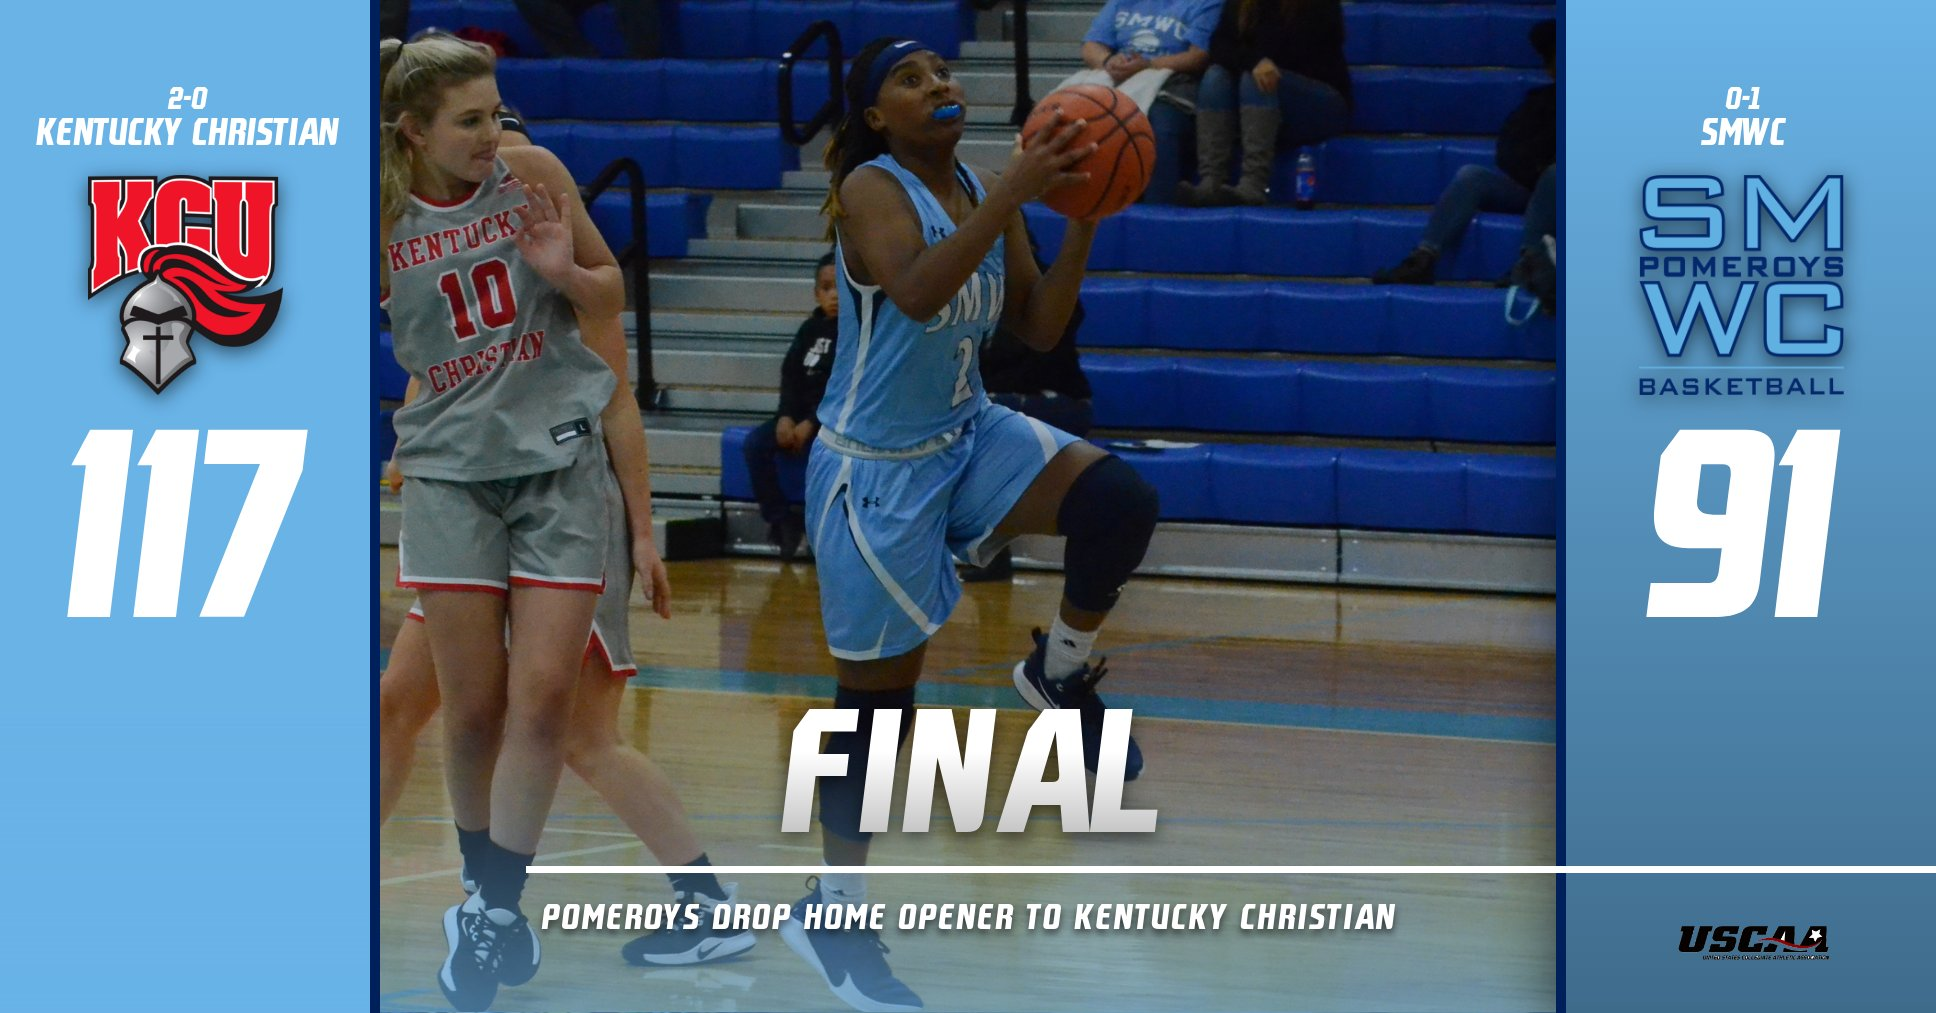 Pomeroys Drop Home Opener to Kentucky Christian